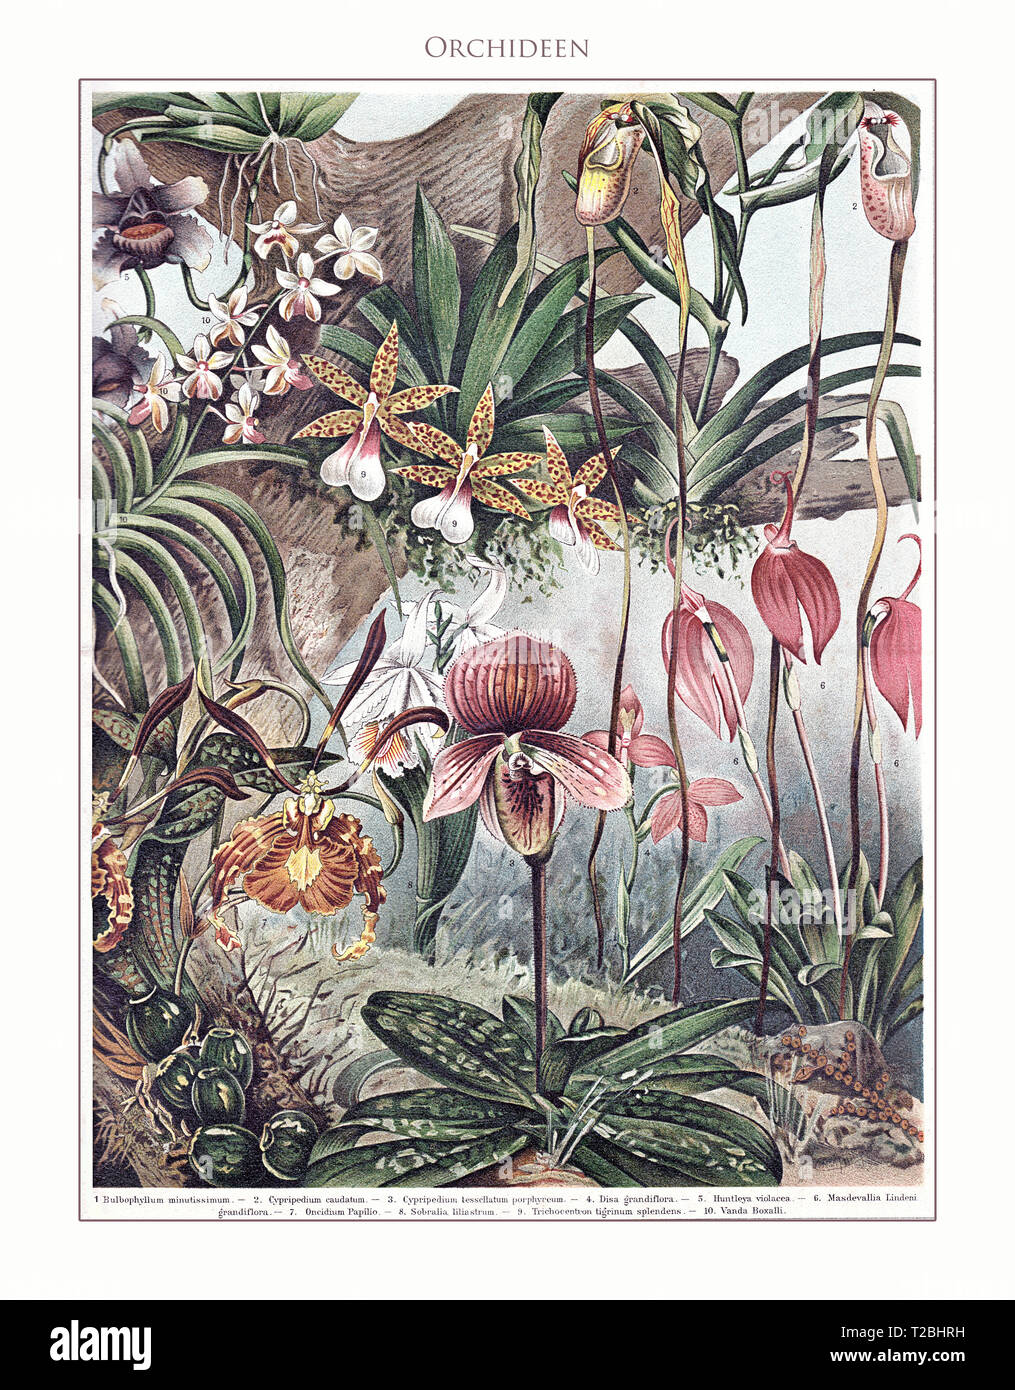 Orchids - table illustrated and restored from Meyers Konversations-Lexikon 5. edition (1893-1901), universal encyclopedia in German language. - Stock Image